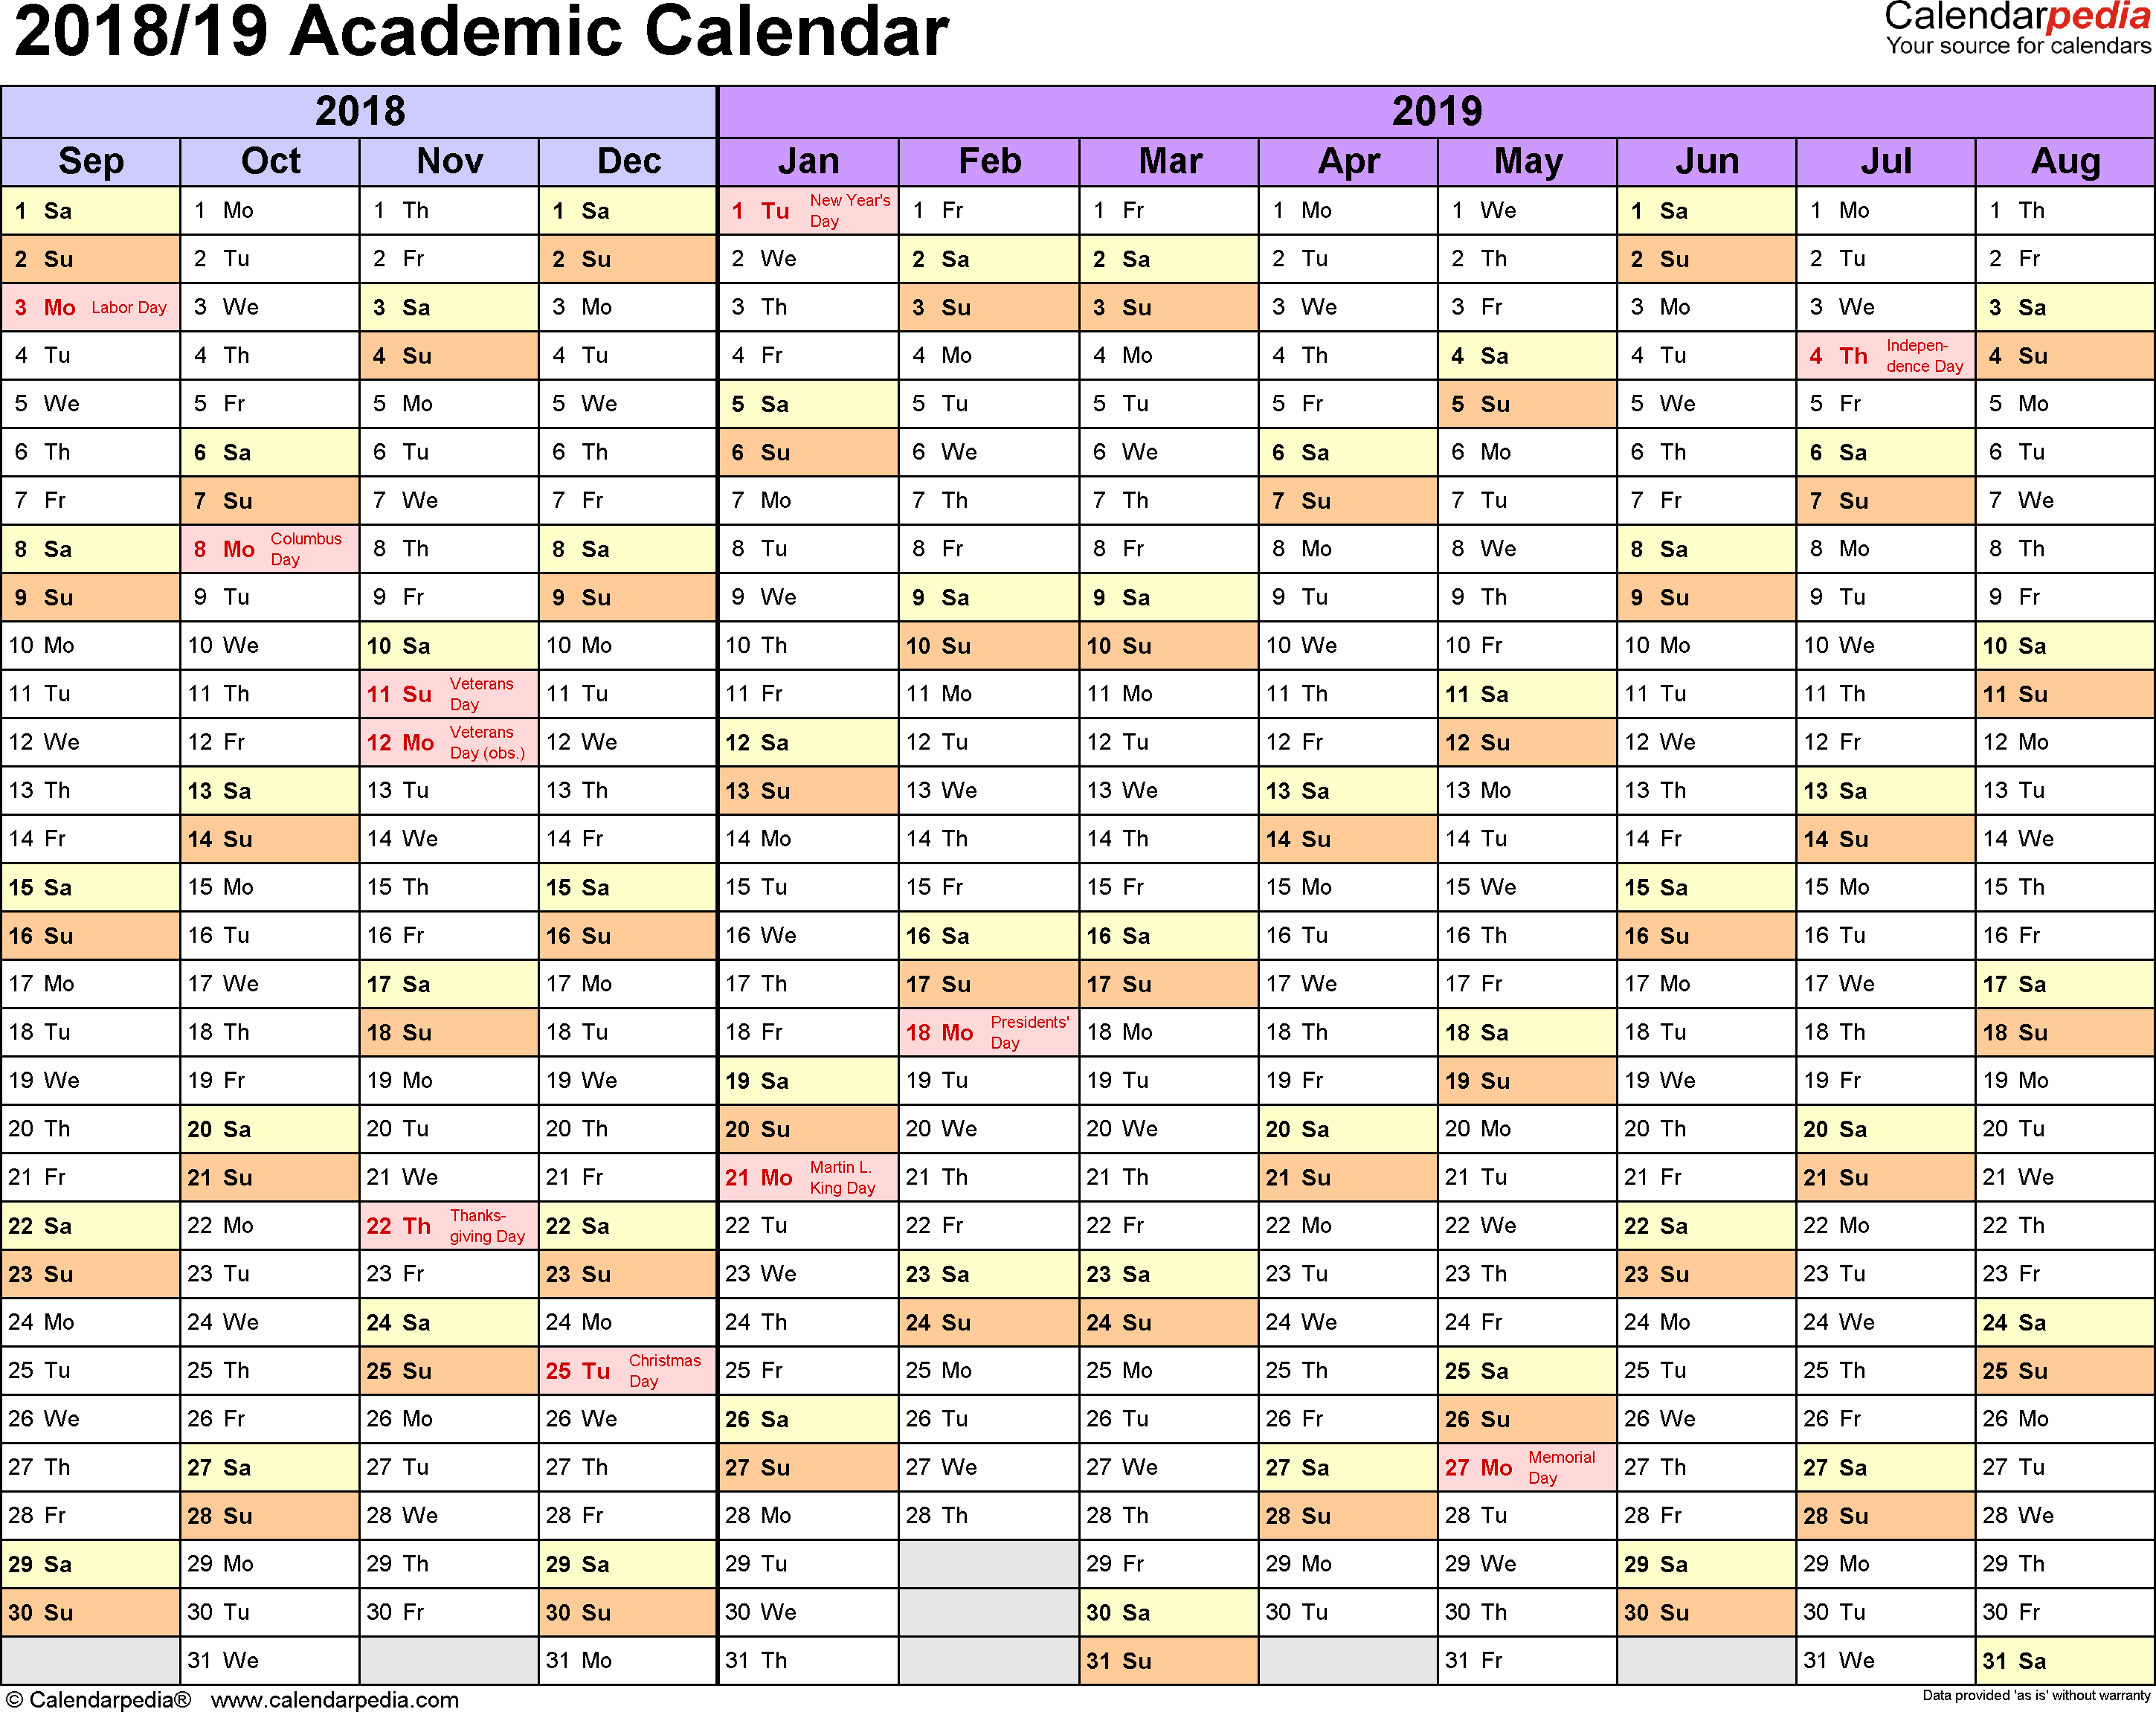 Academic Calendars 2018 2019 As Free Printable Excel Templates